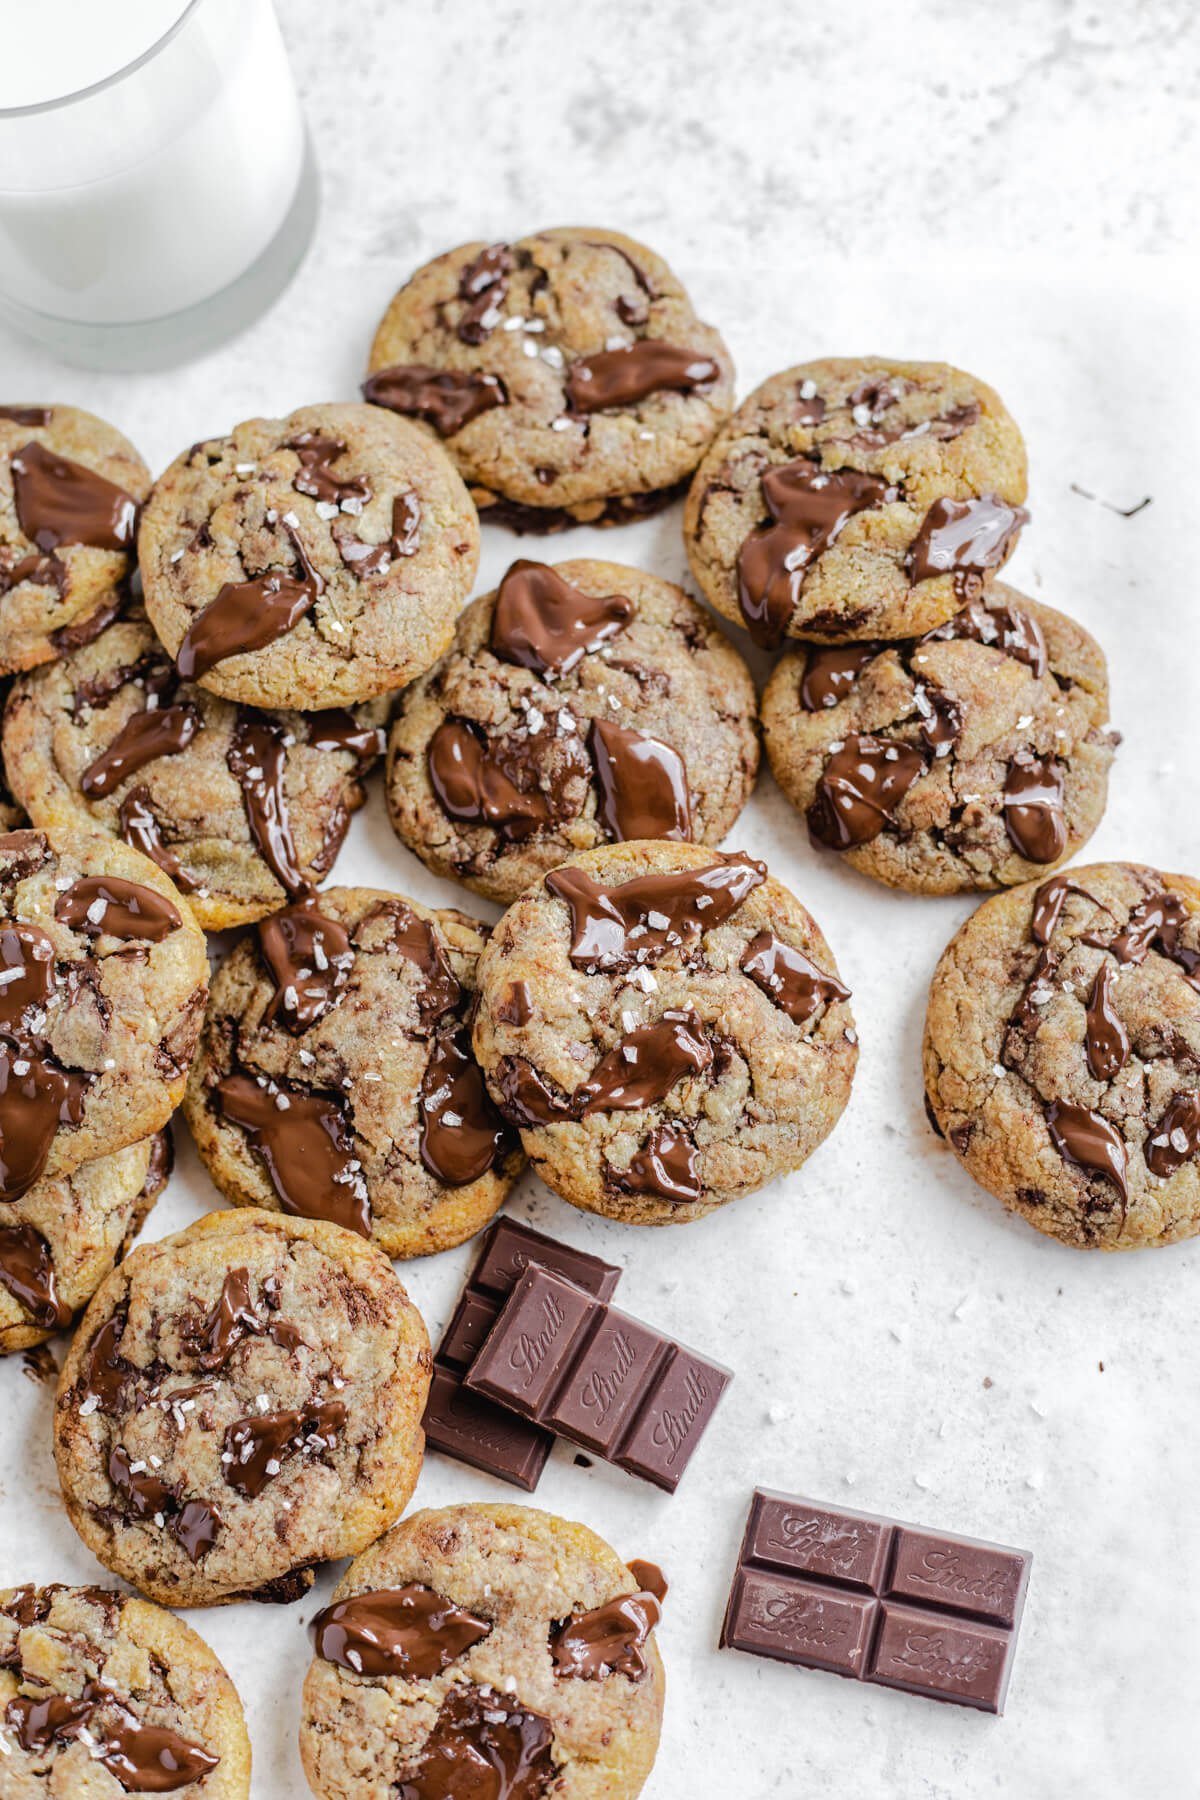 plenty of cookies piled close together with glass of milk in the back and dark chocolate pieces in the foreground